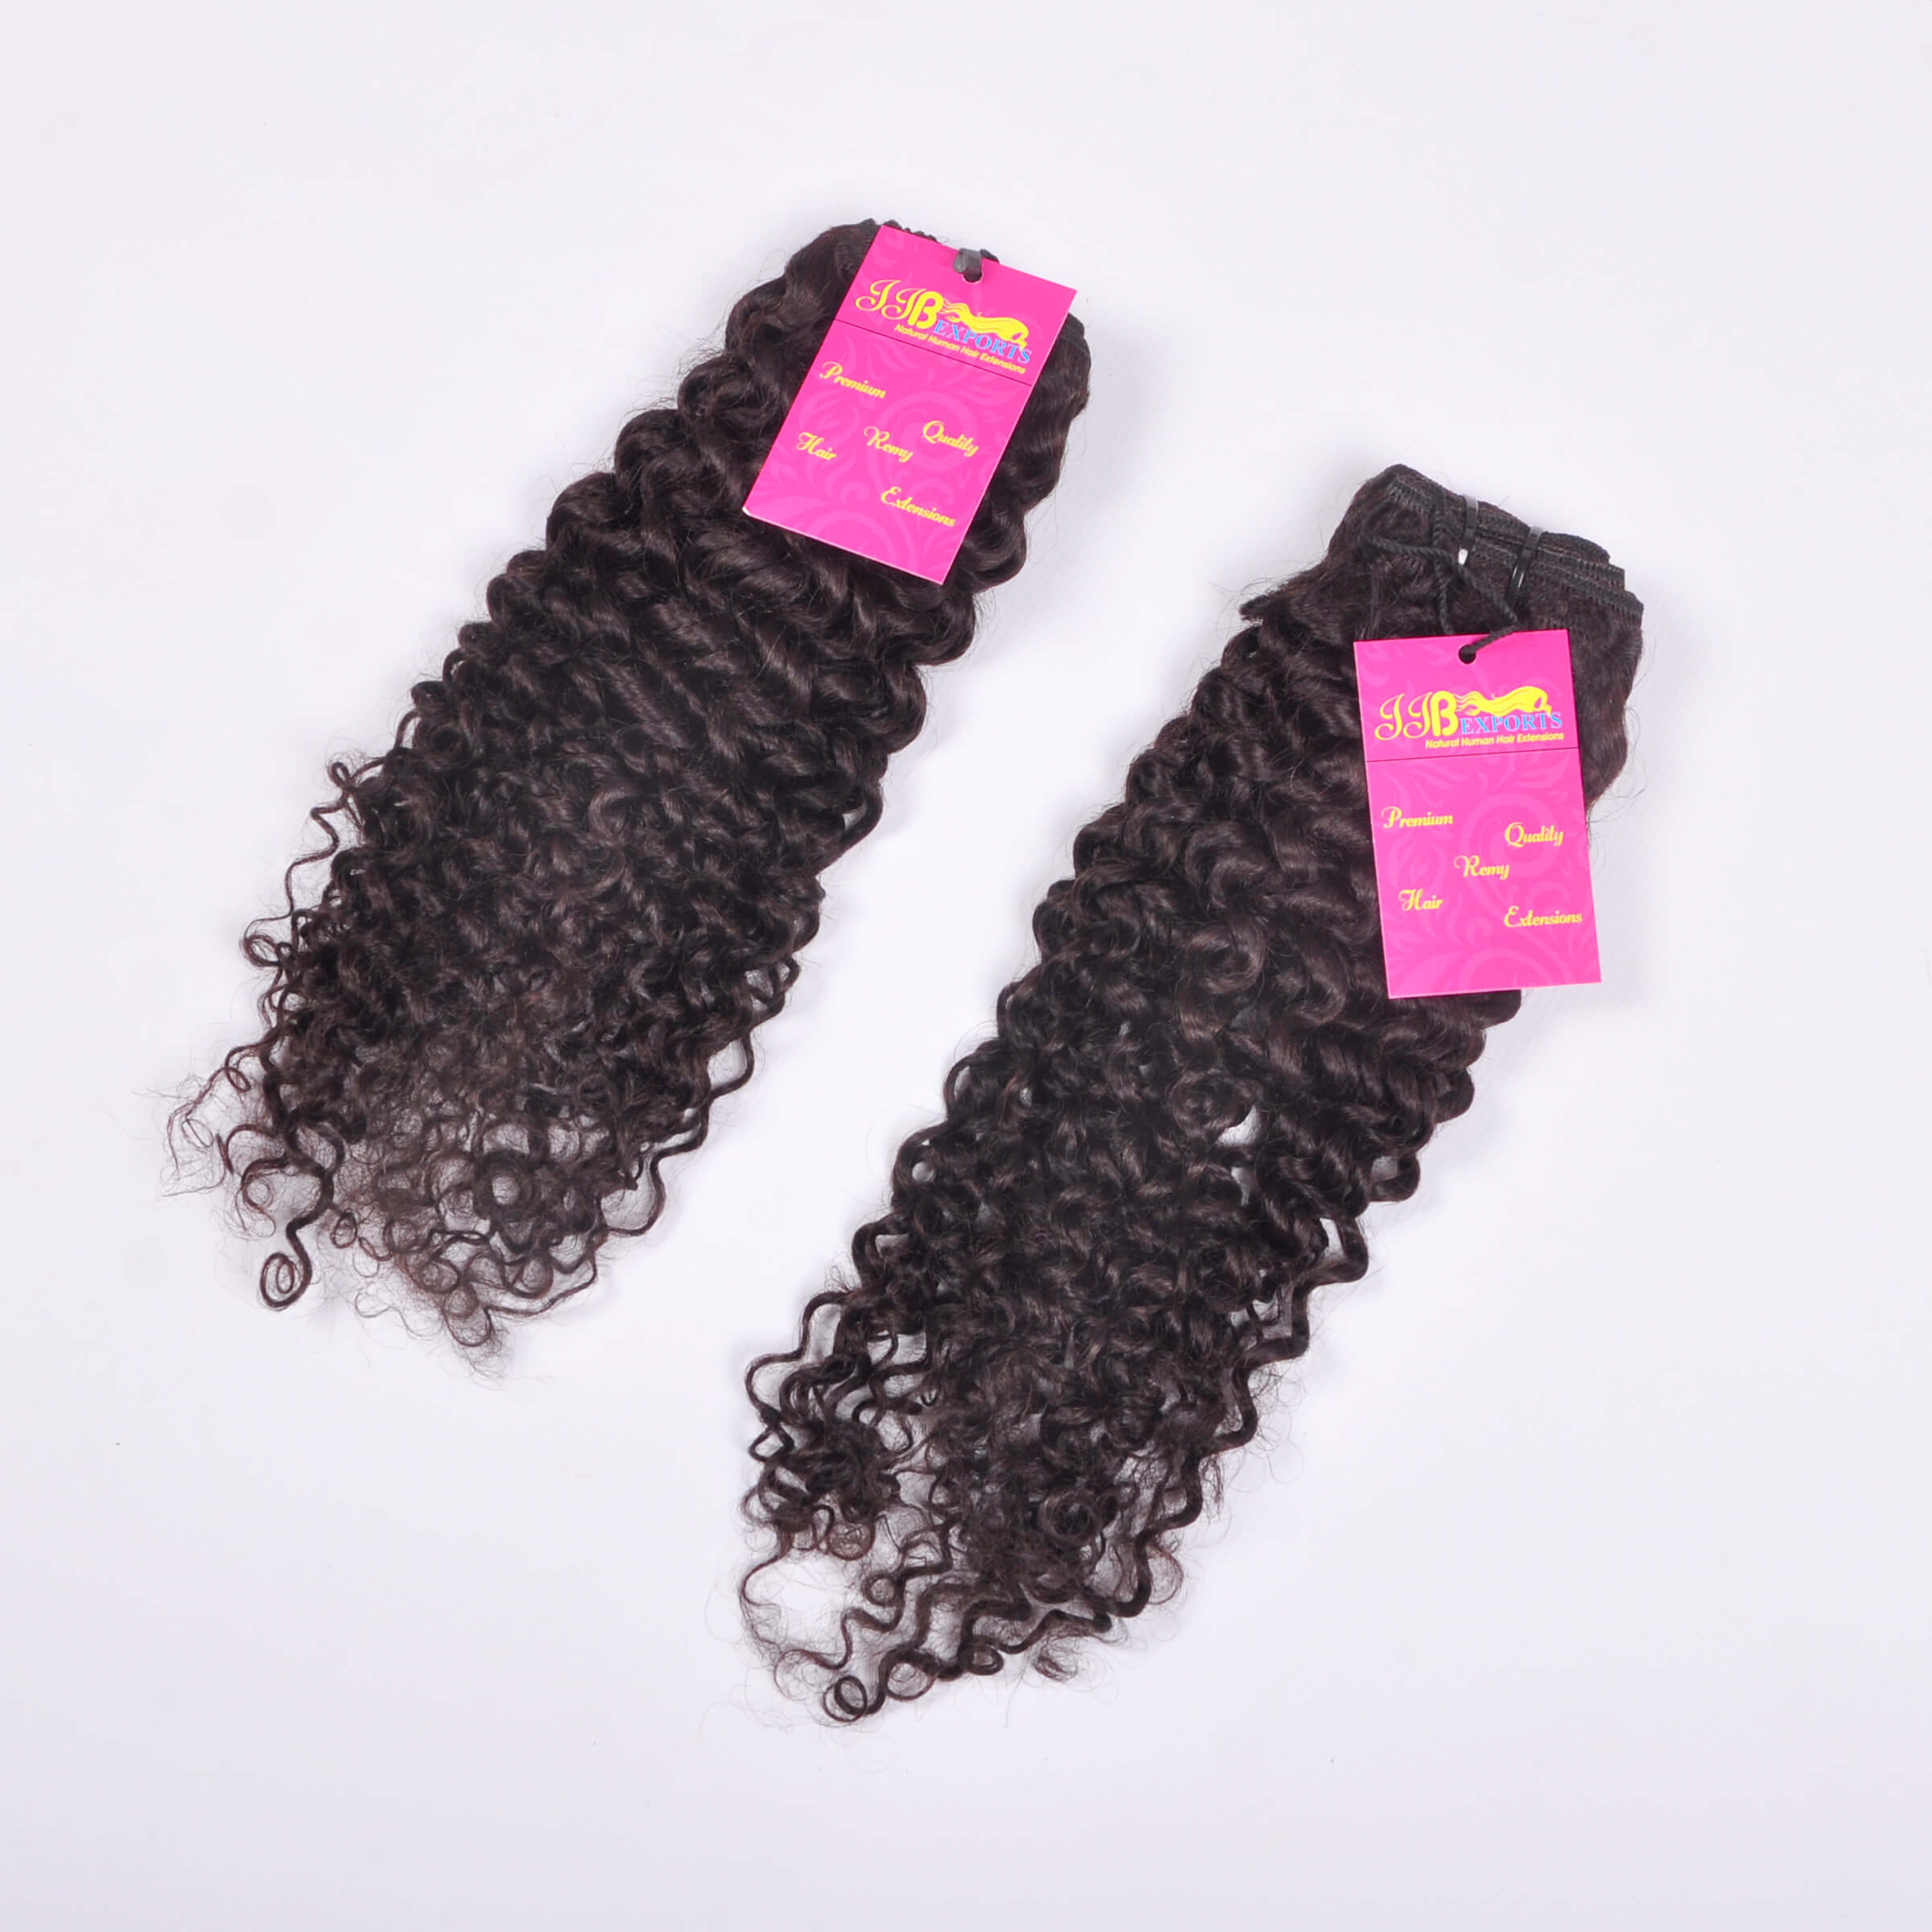 Indian Virgin Unprocessed Raw Curly Human Hair Machine Made Double Wefted Bundles